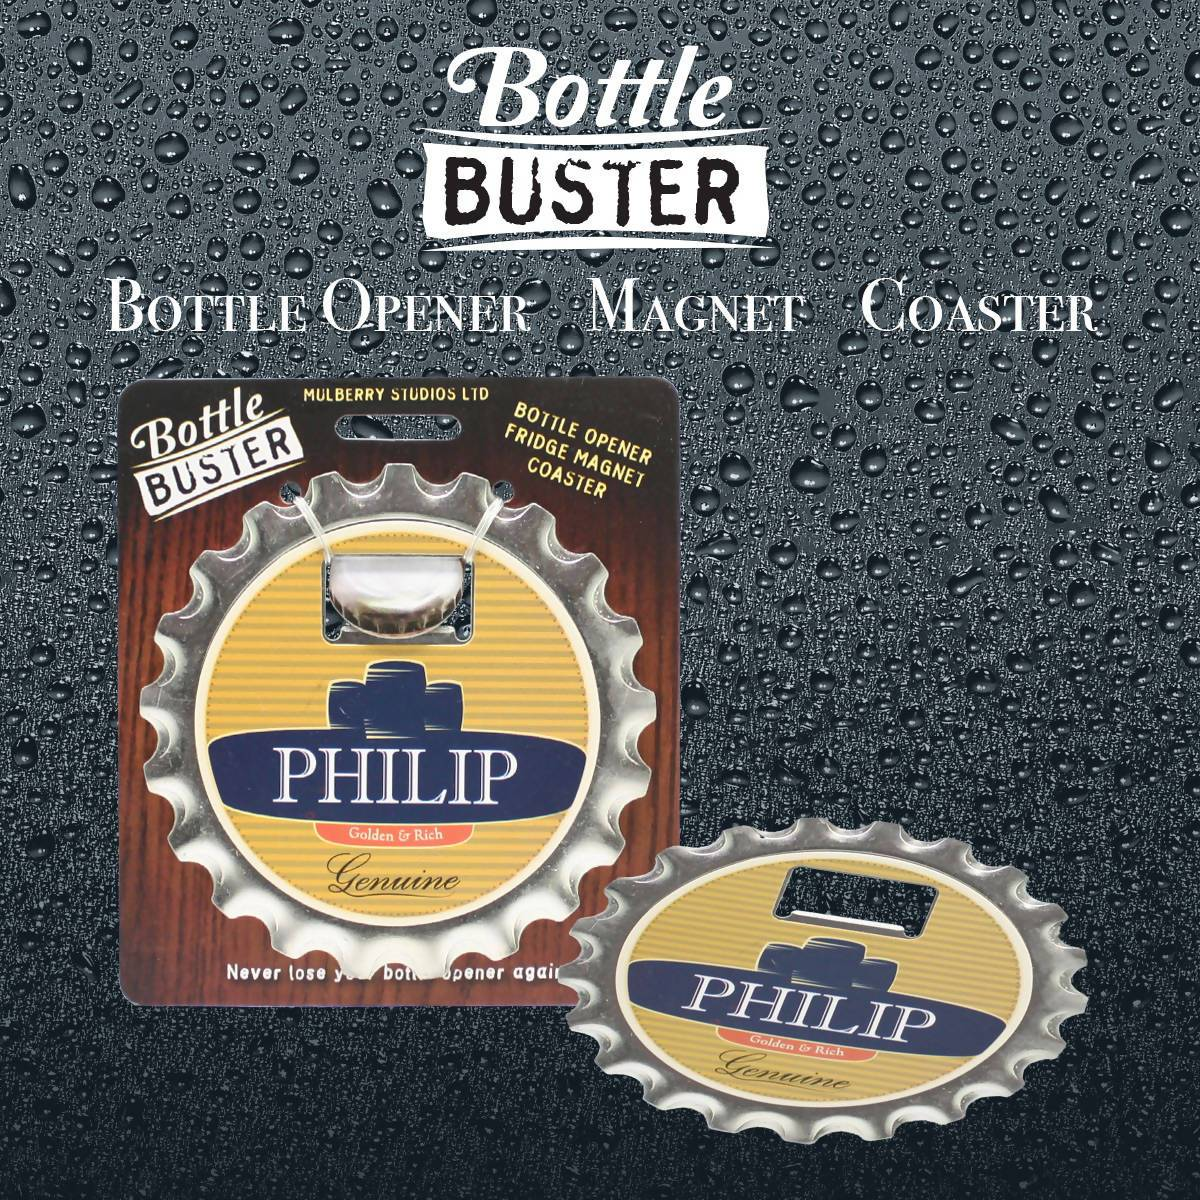 BOTTLE BUSTER - Best Bottle Opener : Phillip - Bottle Openers - La Belle Collection - Naiise